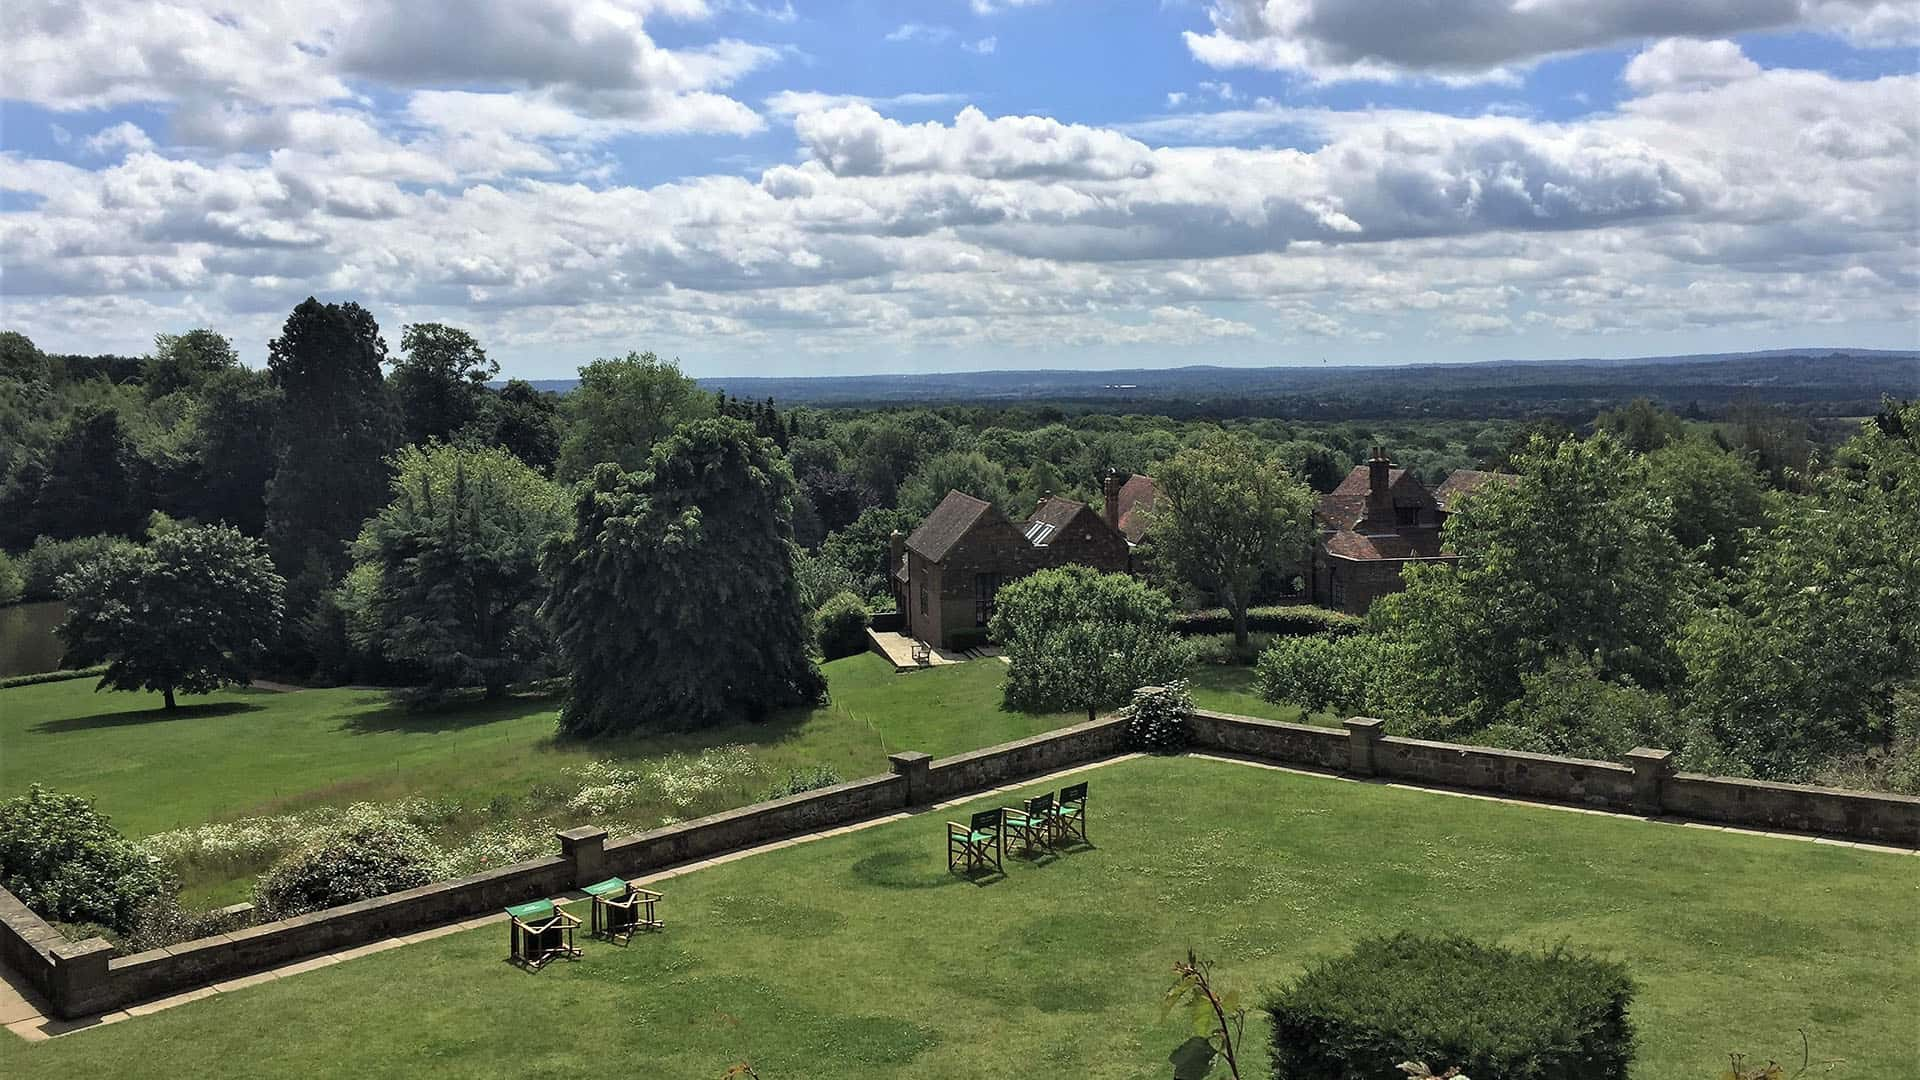 Views of Chartwell House gardens